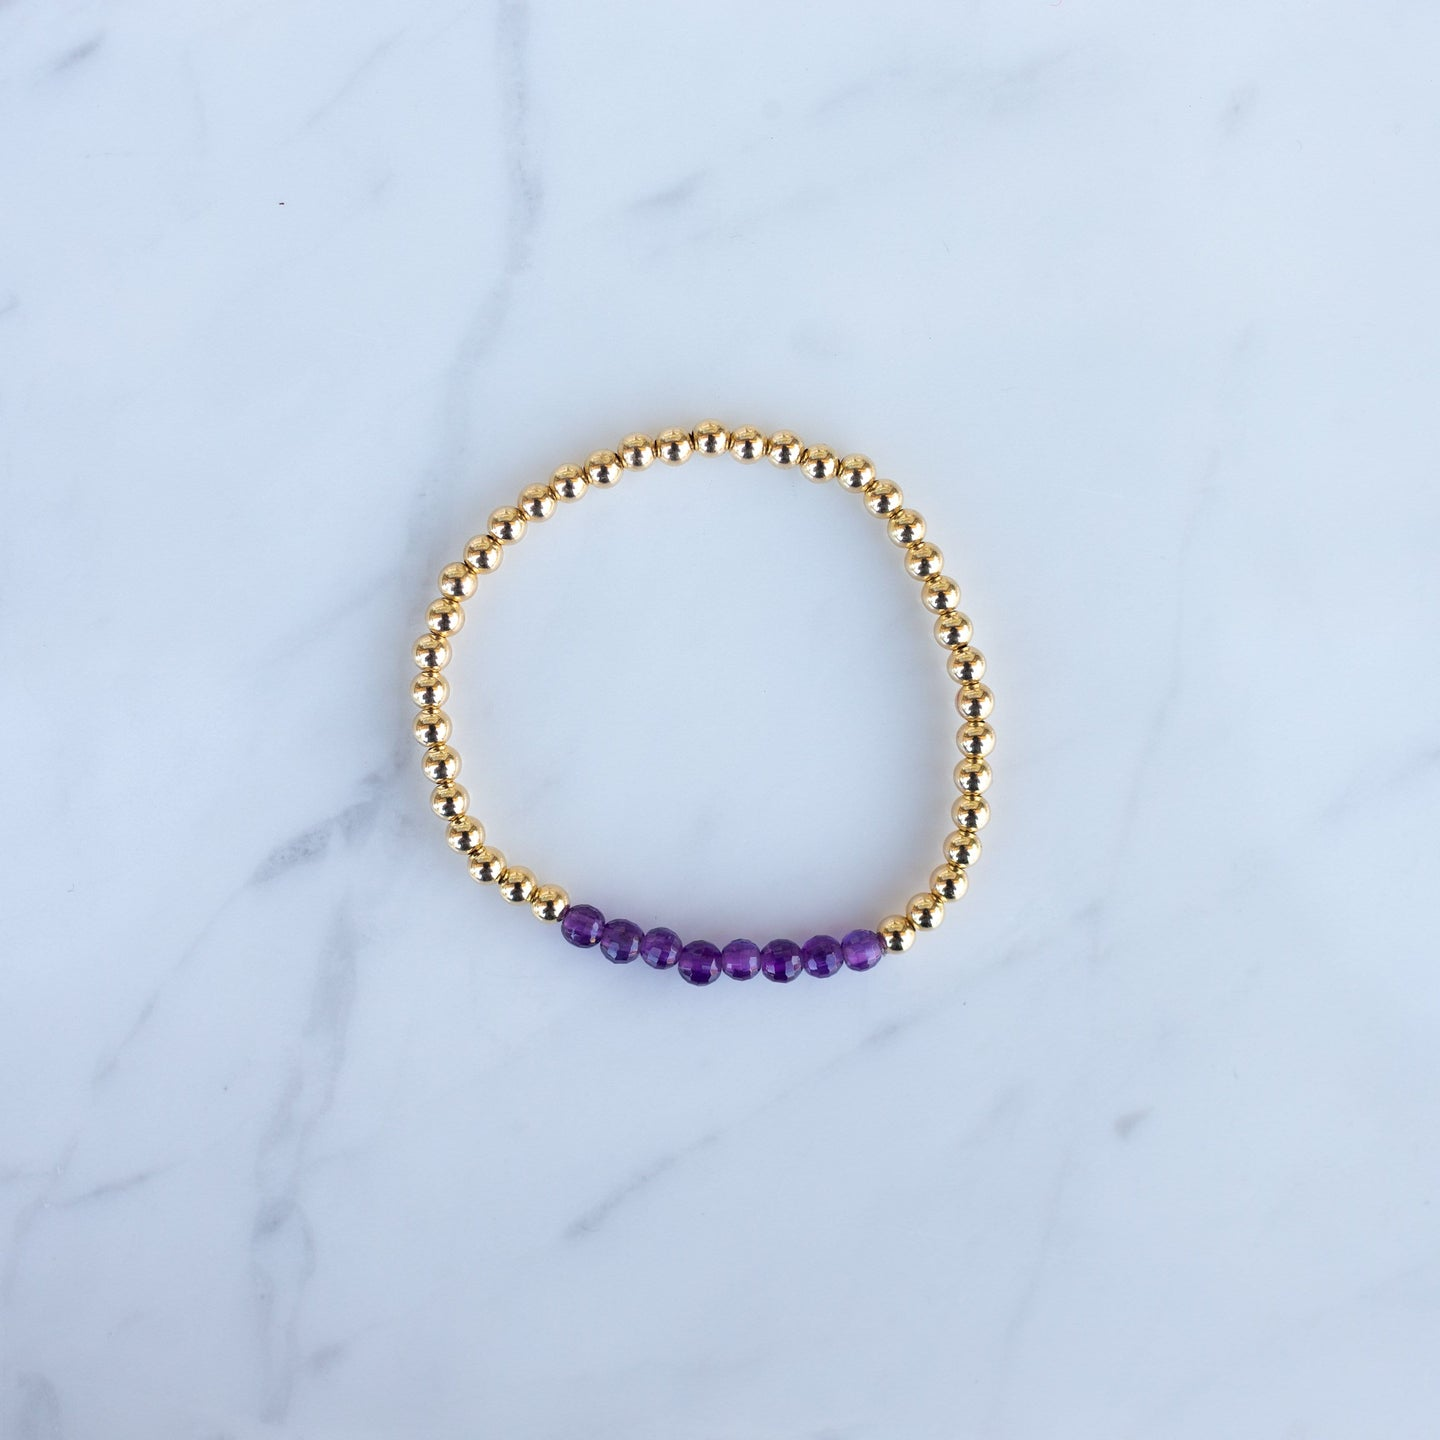 3mm Yellow Gold Filled & Purple Amethyst Beaded Bracelet